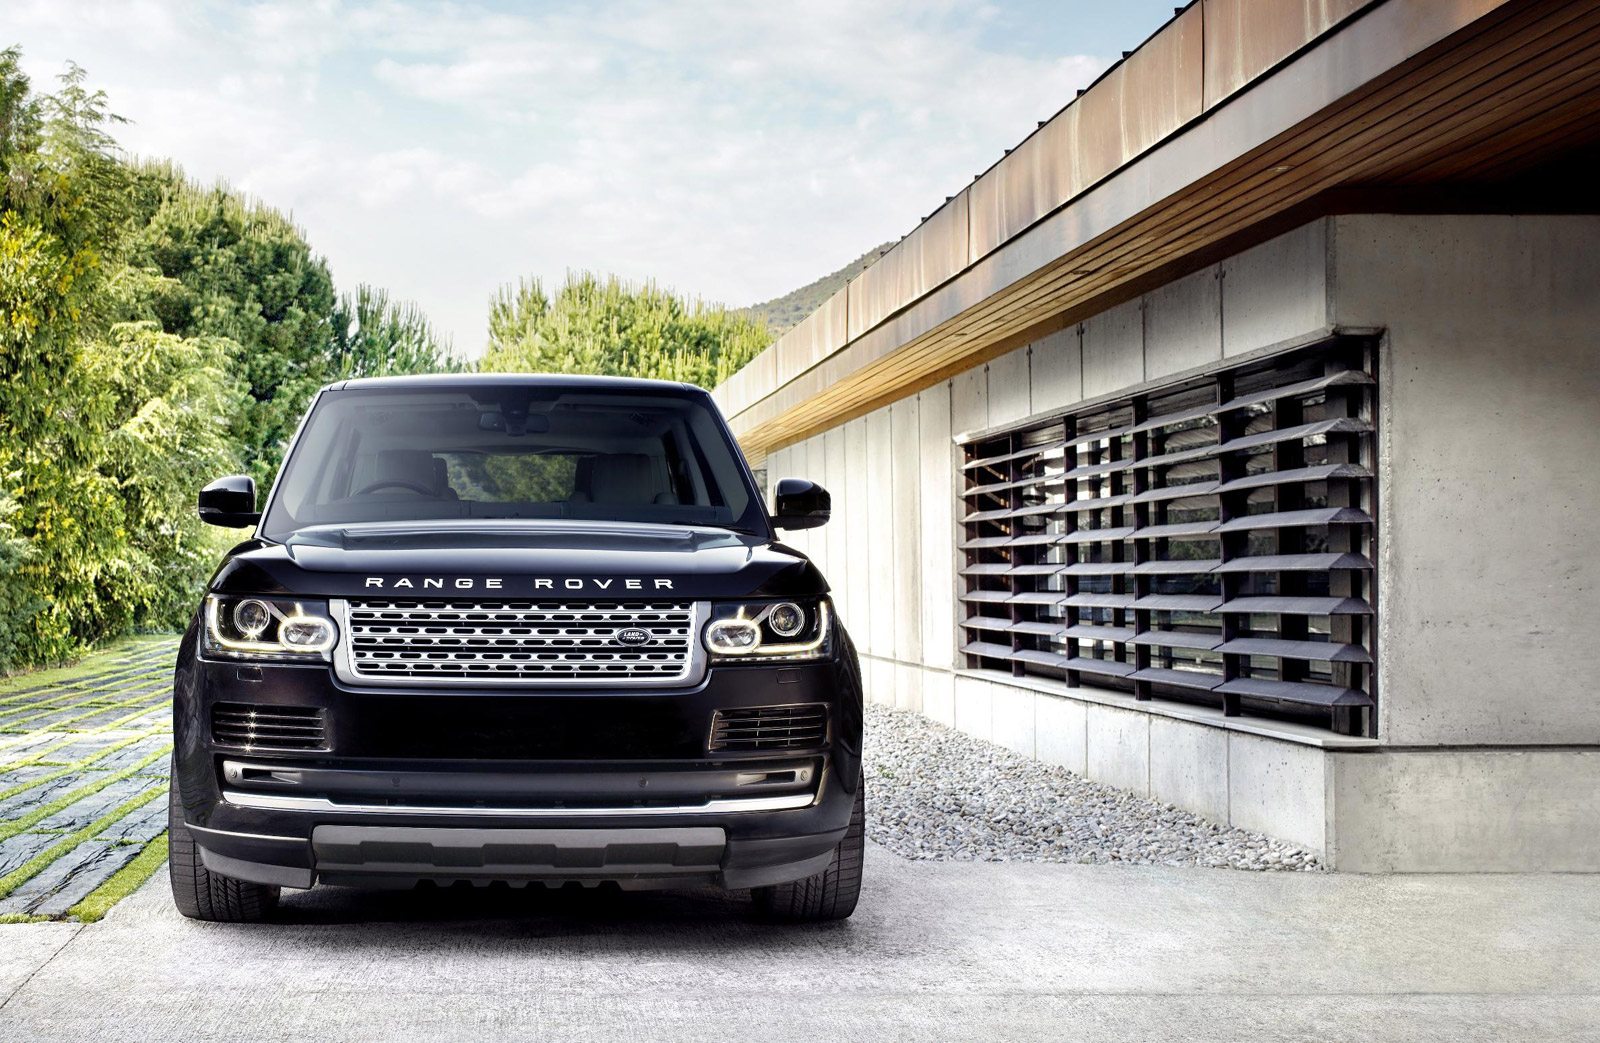 Land Rover Range Rover For Sale >> 2013-2014 Land Rover Range Rover Recalled For Airbag System Flaw